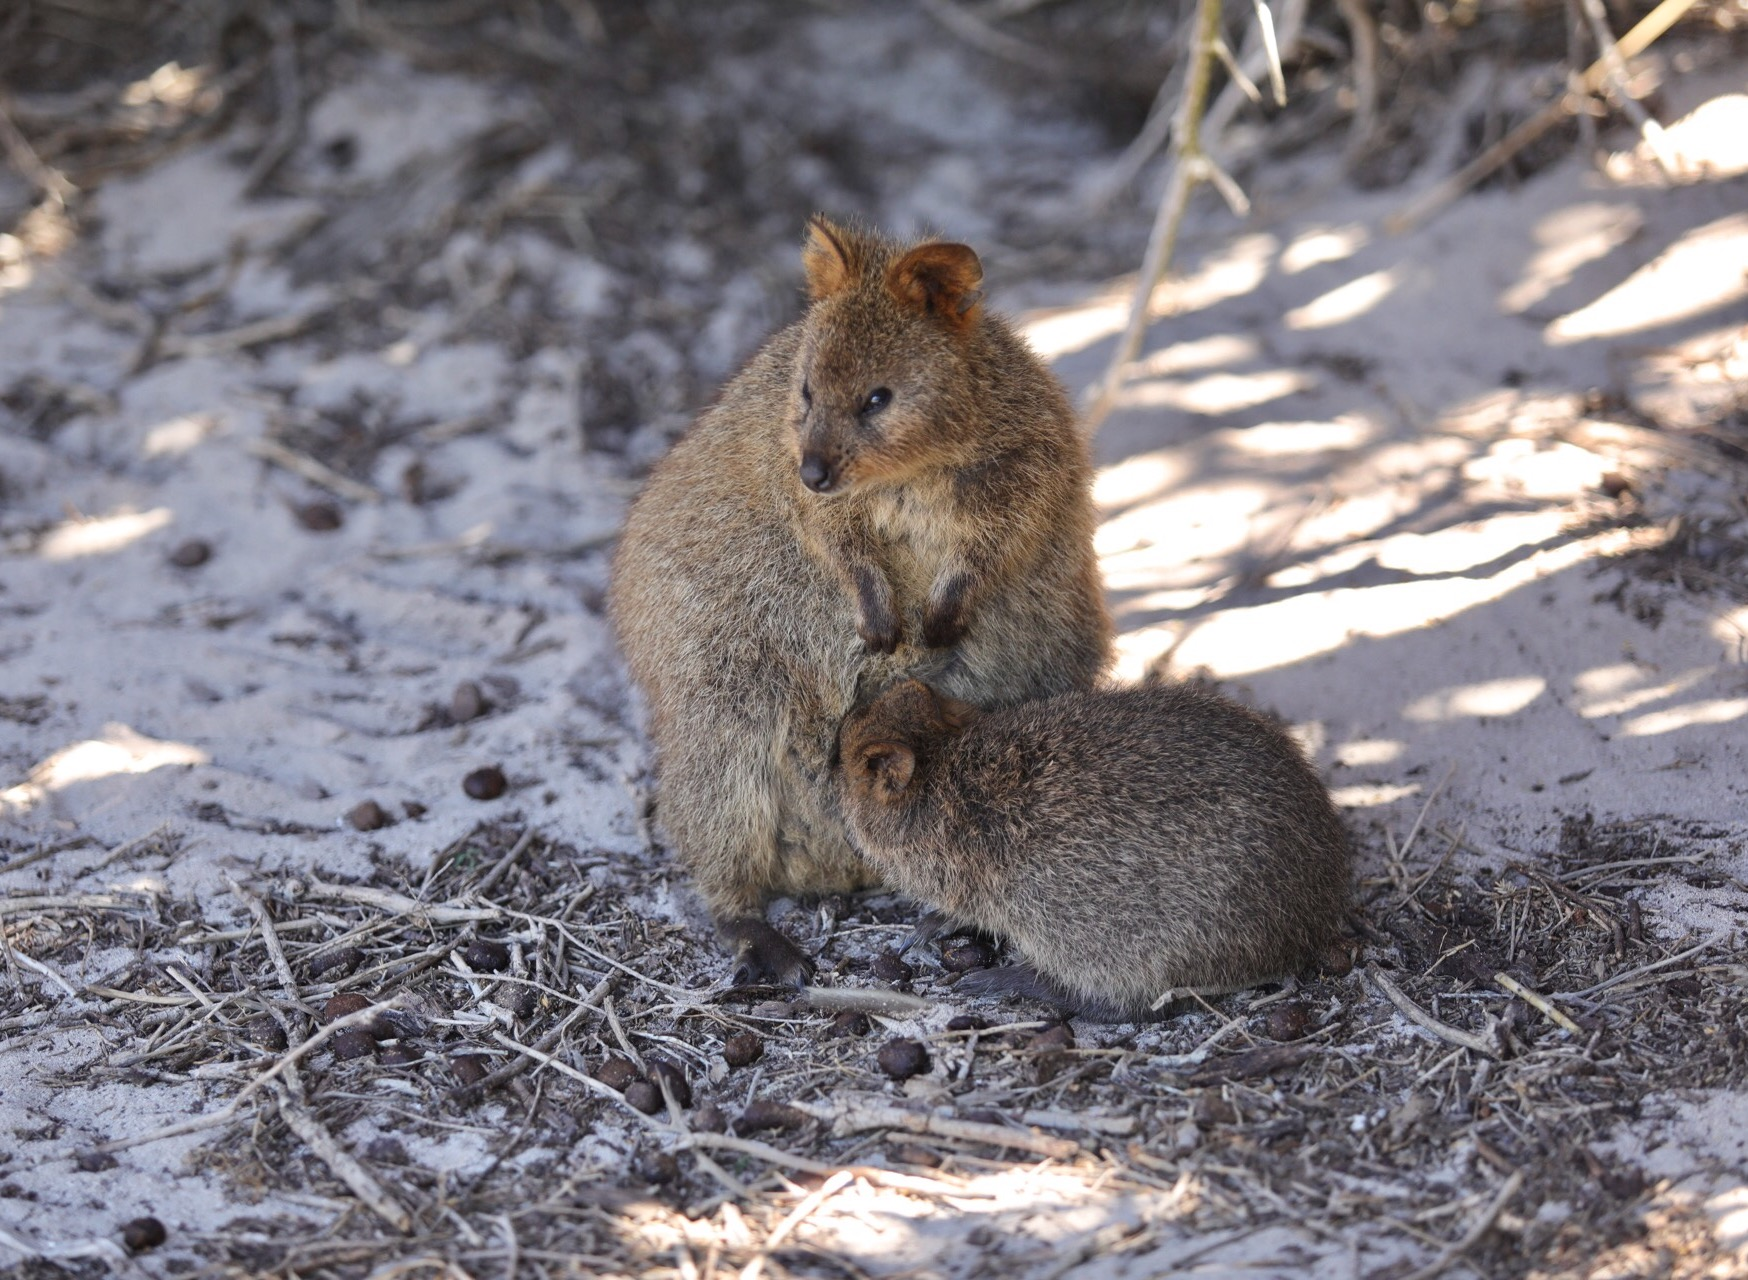 Mother quokka with baby